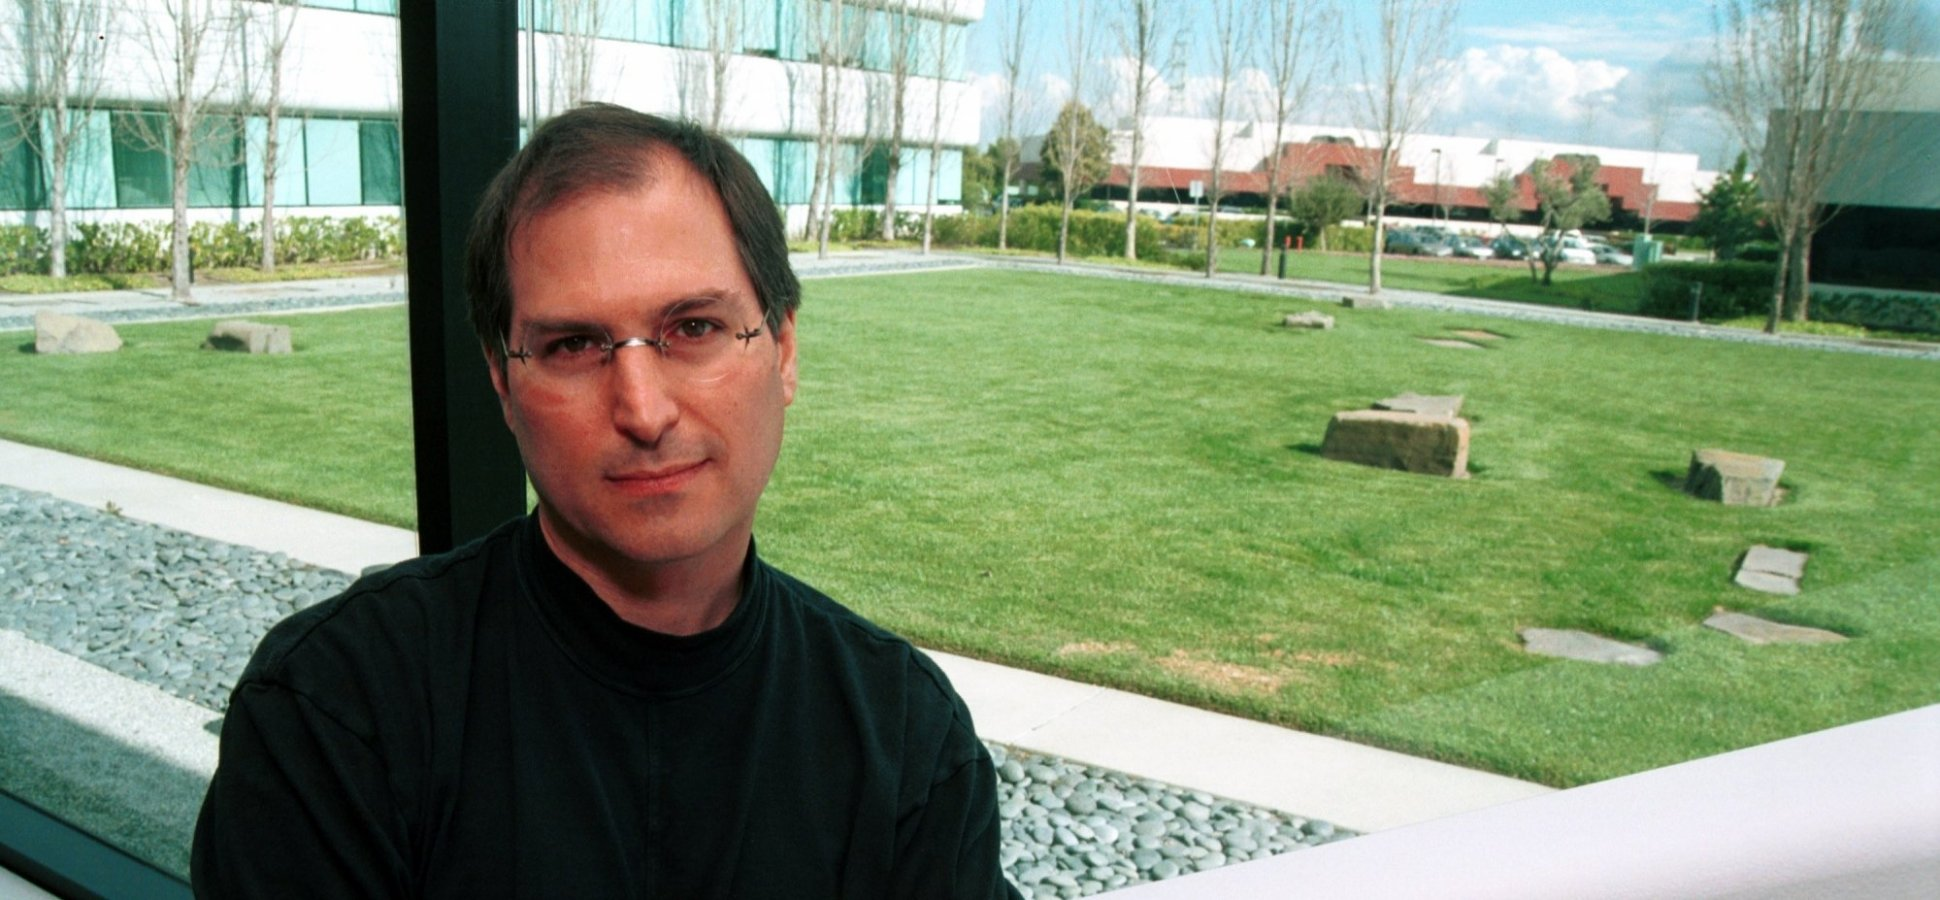 22 Years Ago, Steve Jobs Said 1 Thing Separates People Who Achieve From Those Who Only Dream